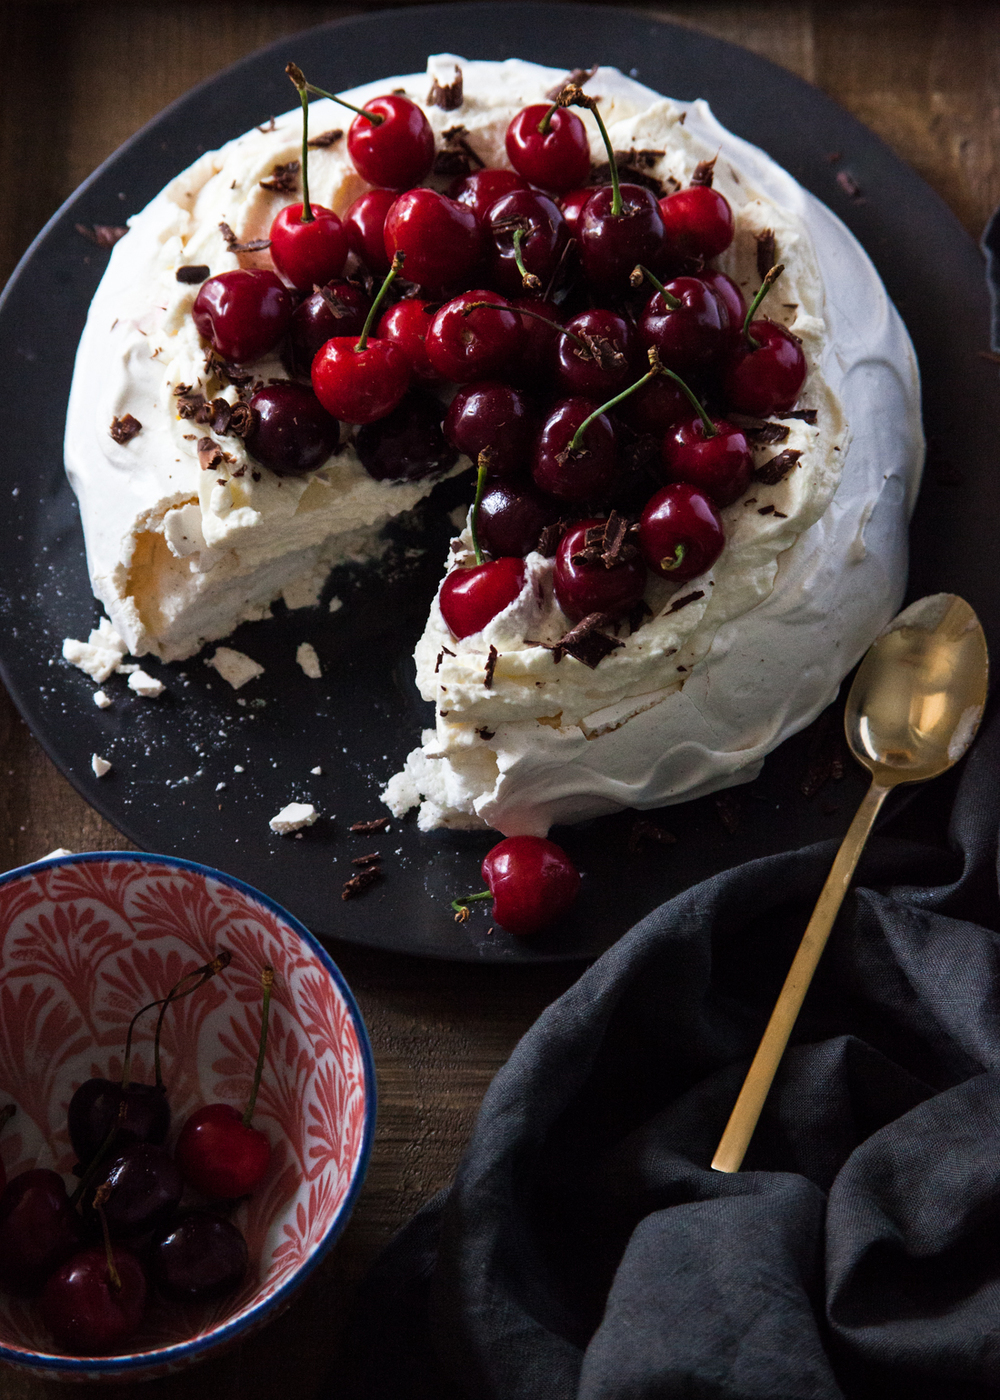 Pavlova with almond cream, fresh cherries, and chocolate shavings.